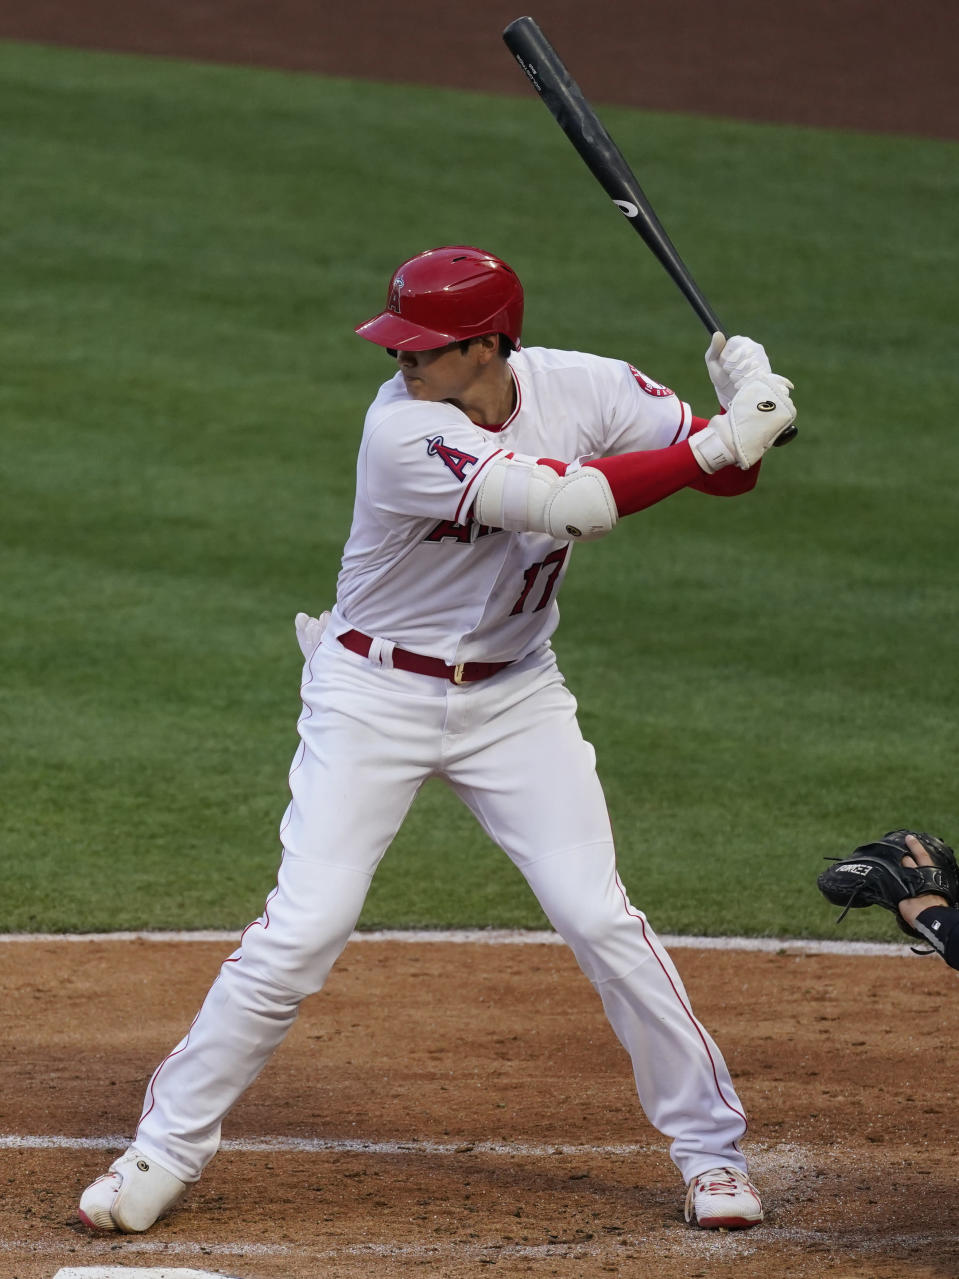 Los Angeles Angels' Shohei Ohtani (17) bats during the second inning of a baseball game against the Chicago White Sox Sunday, April 4, 2021, in Anaheim, Calif. (AP Photo/Ashley Landis)